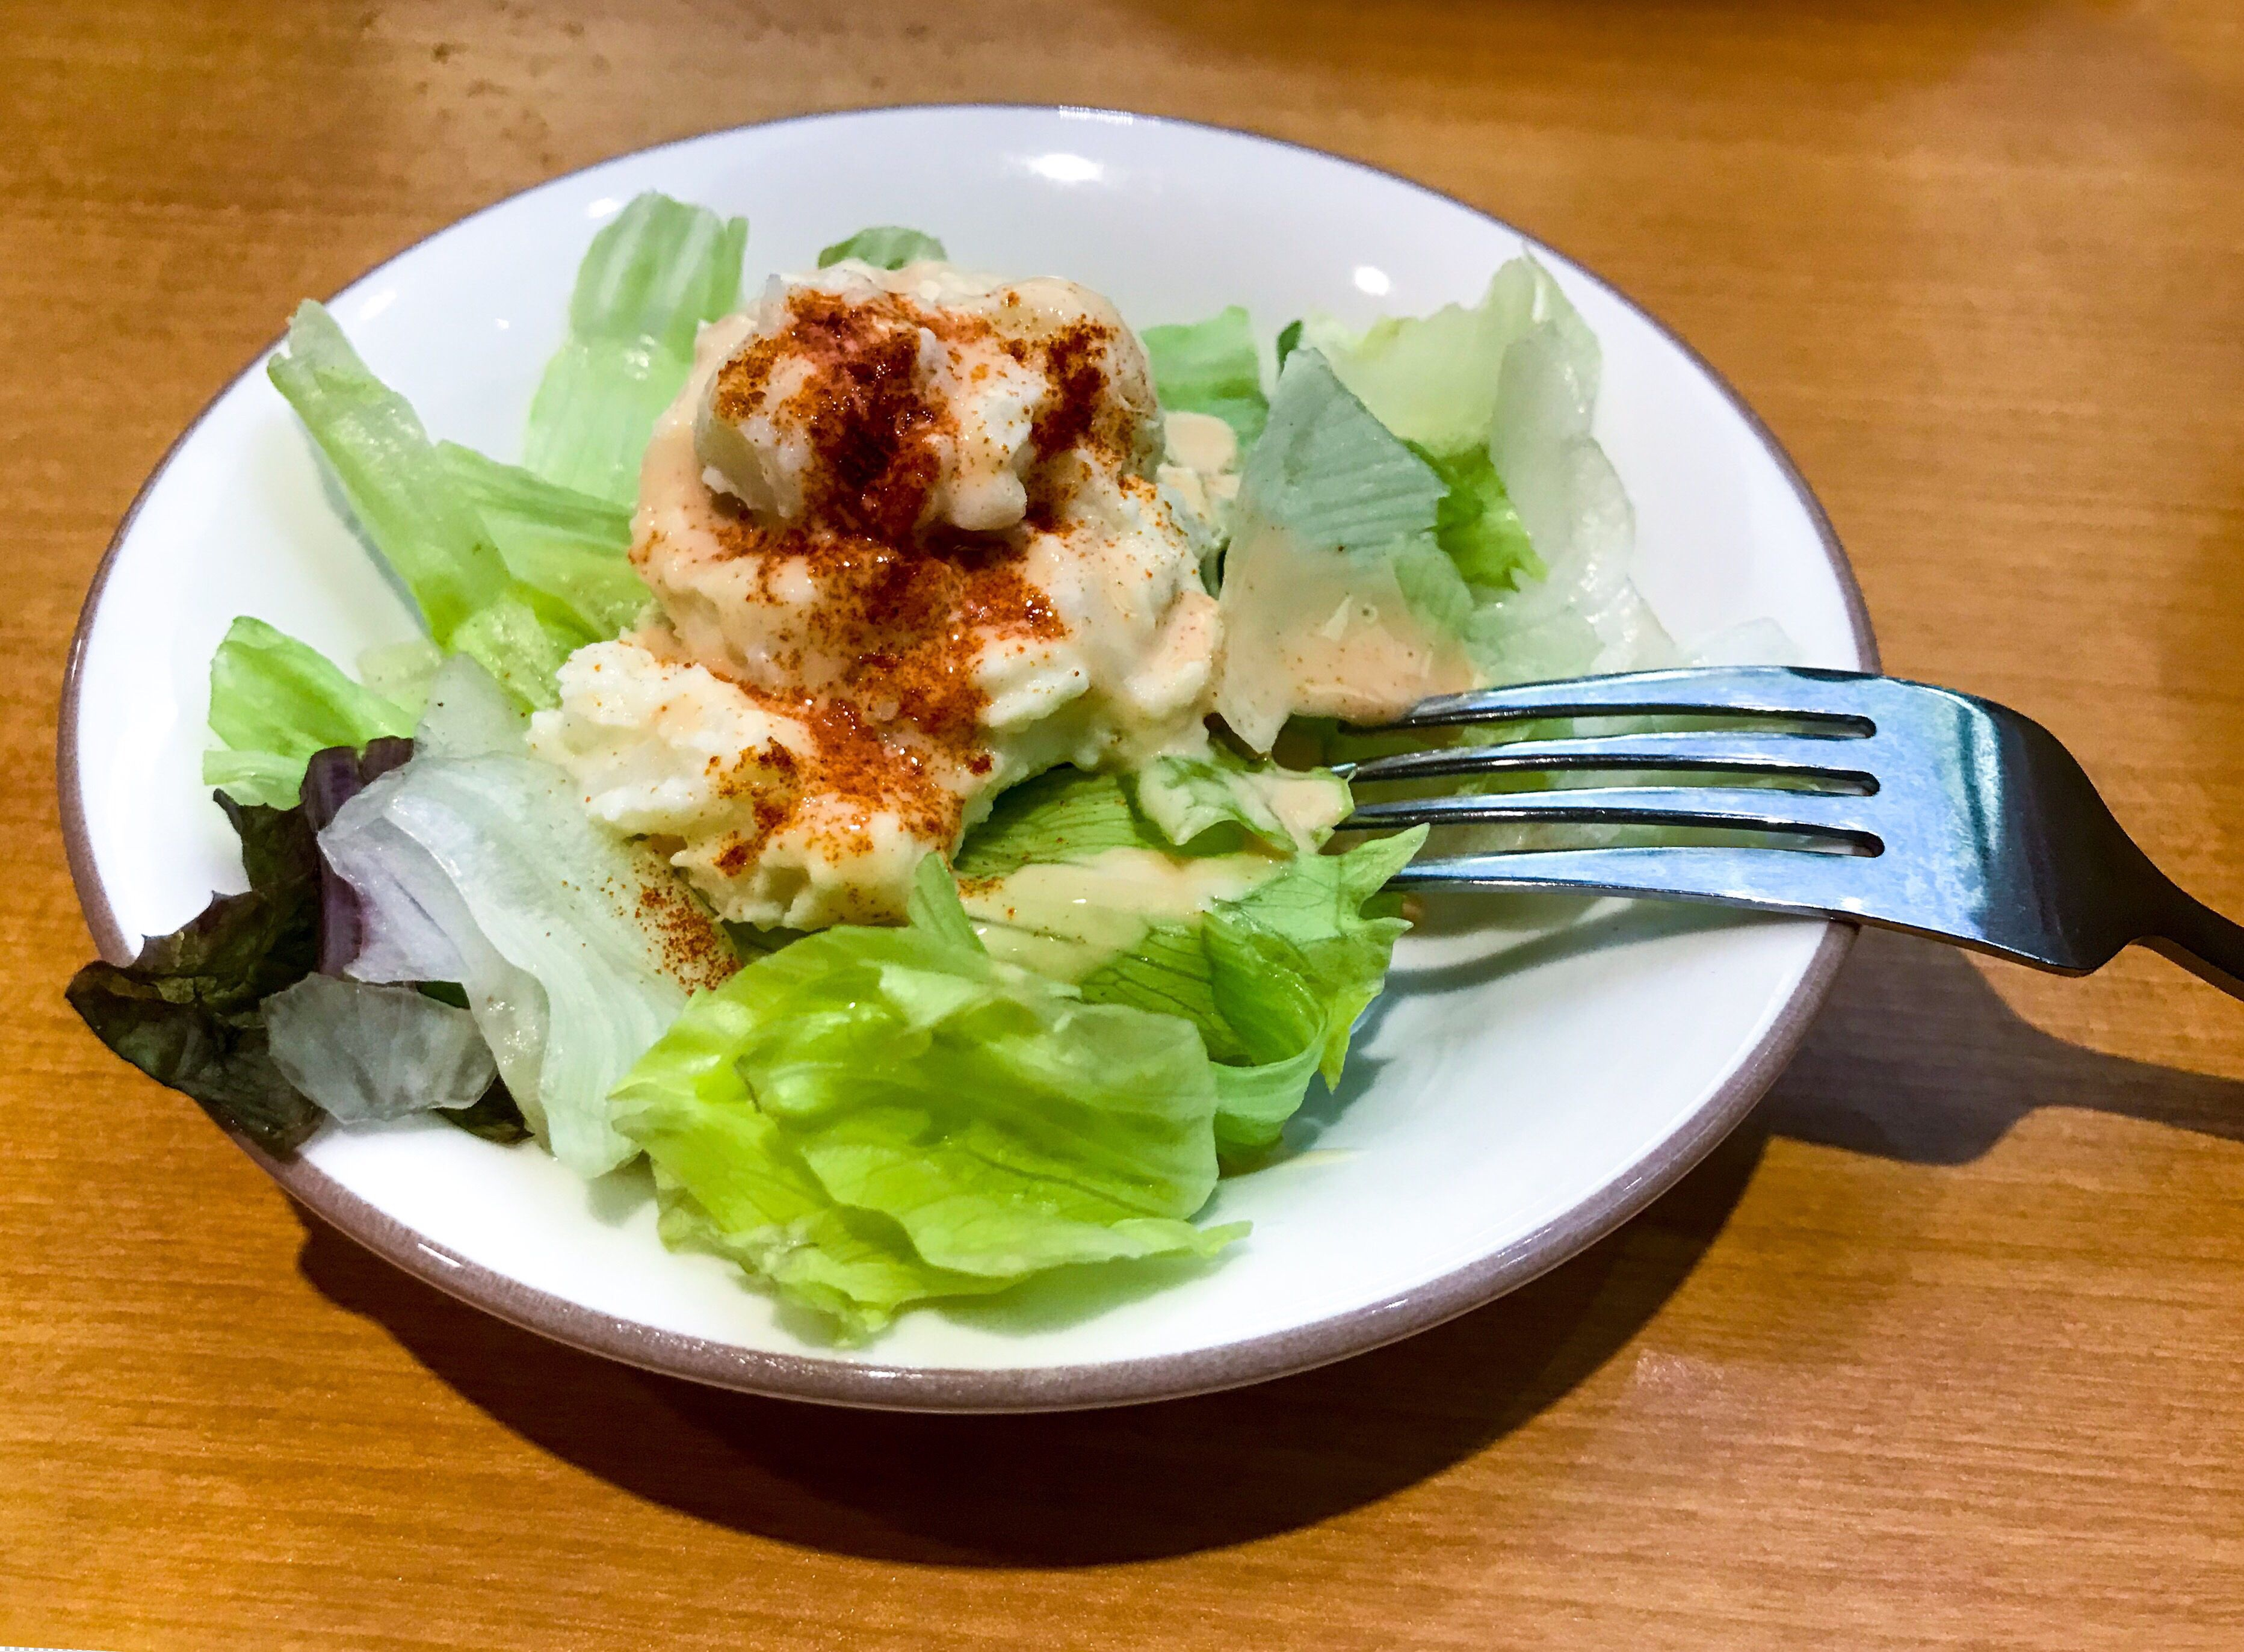 Small salad with fork on table